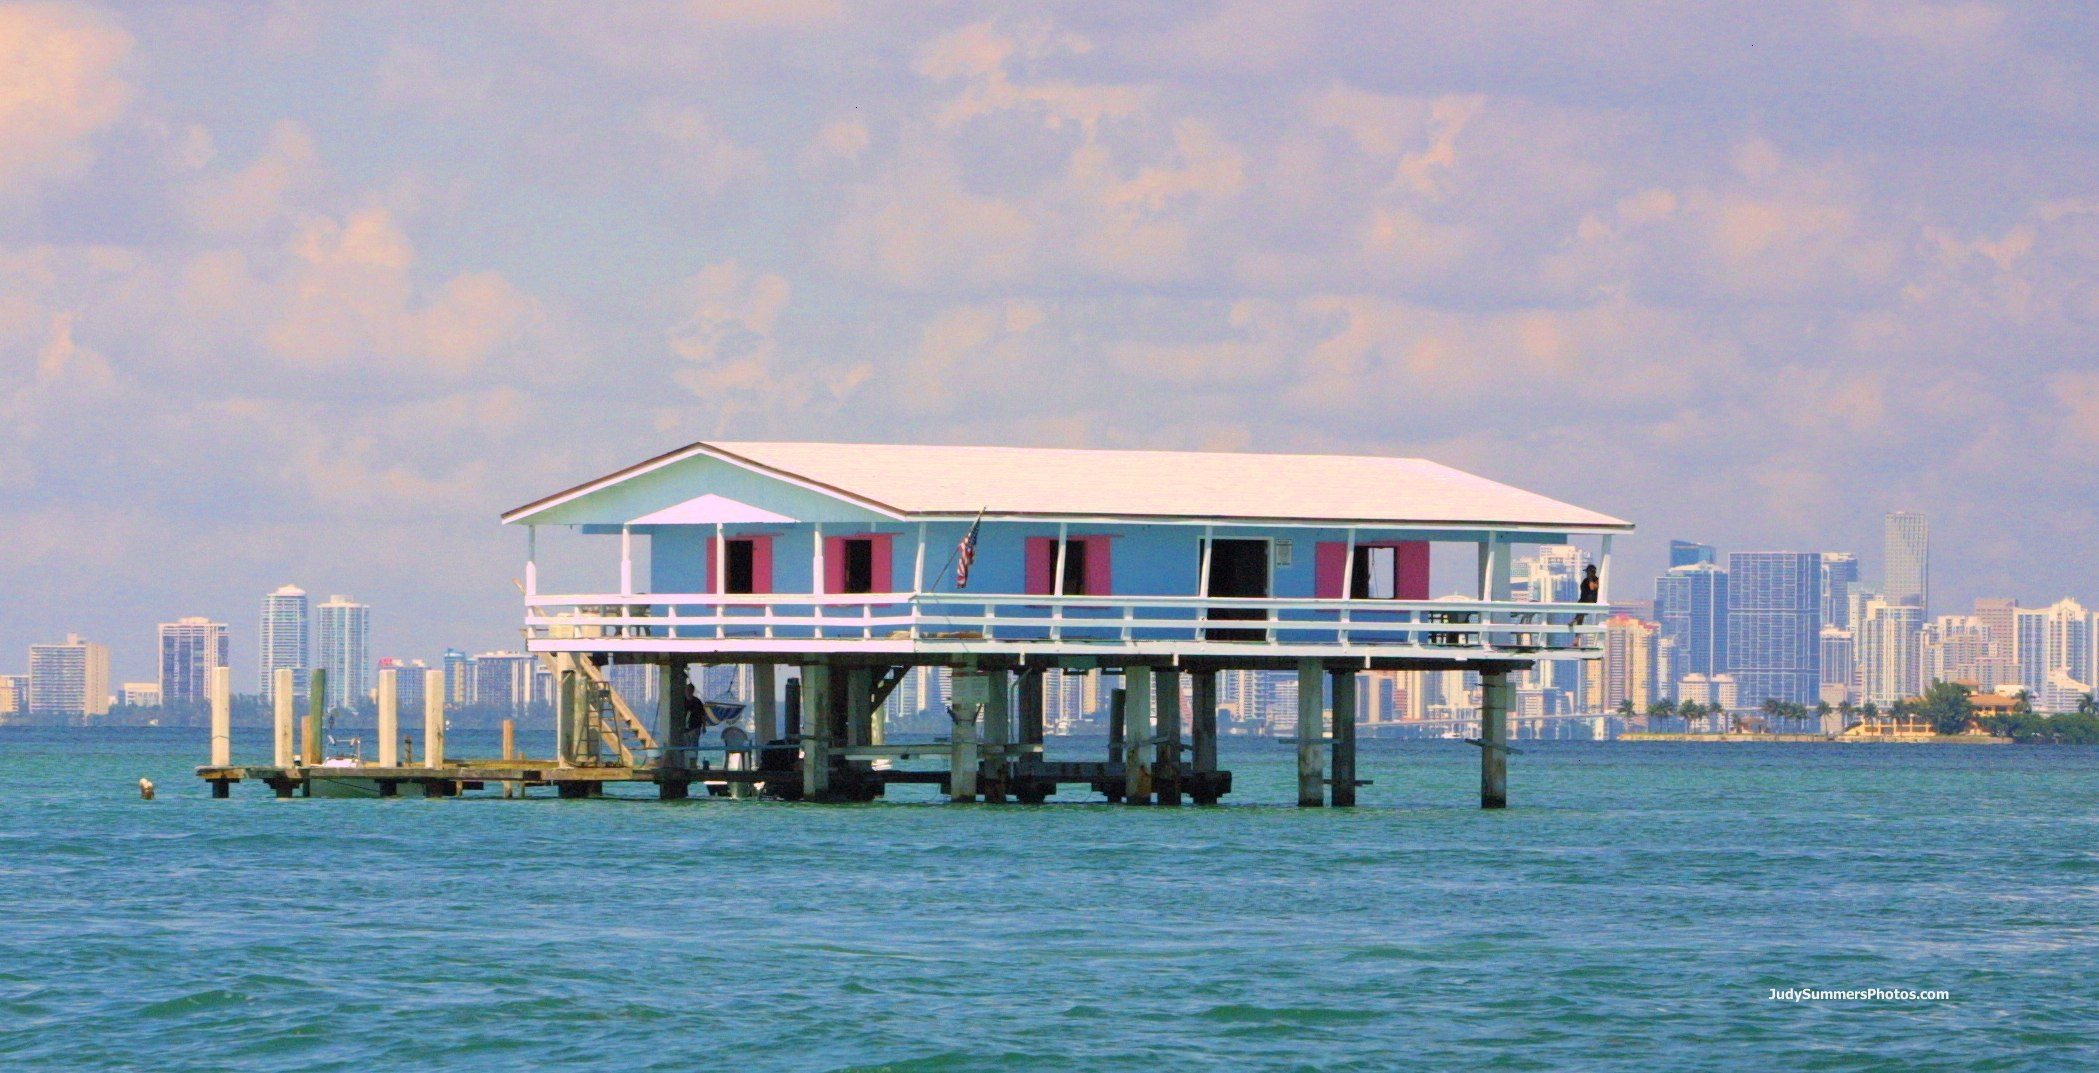 picture-176-blue-house-downtown-miami.jpg